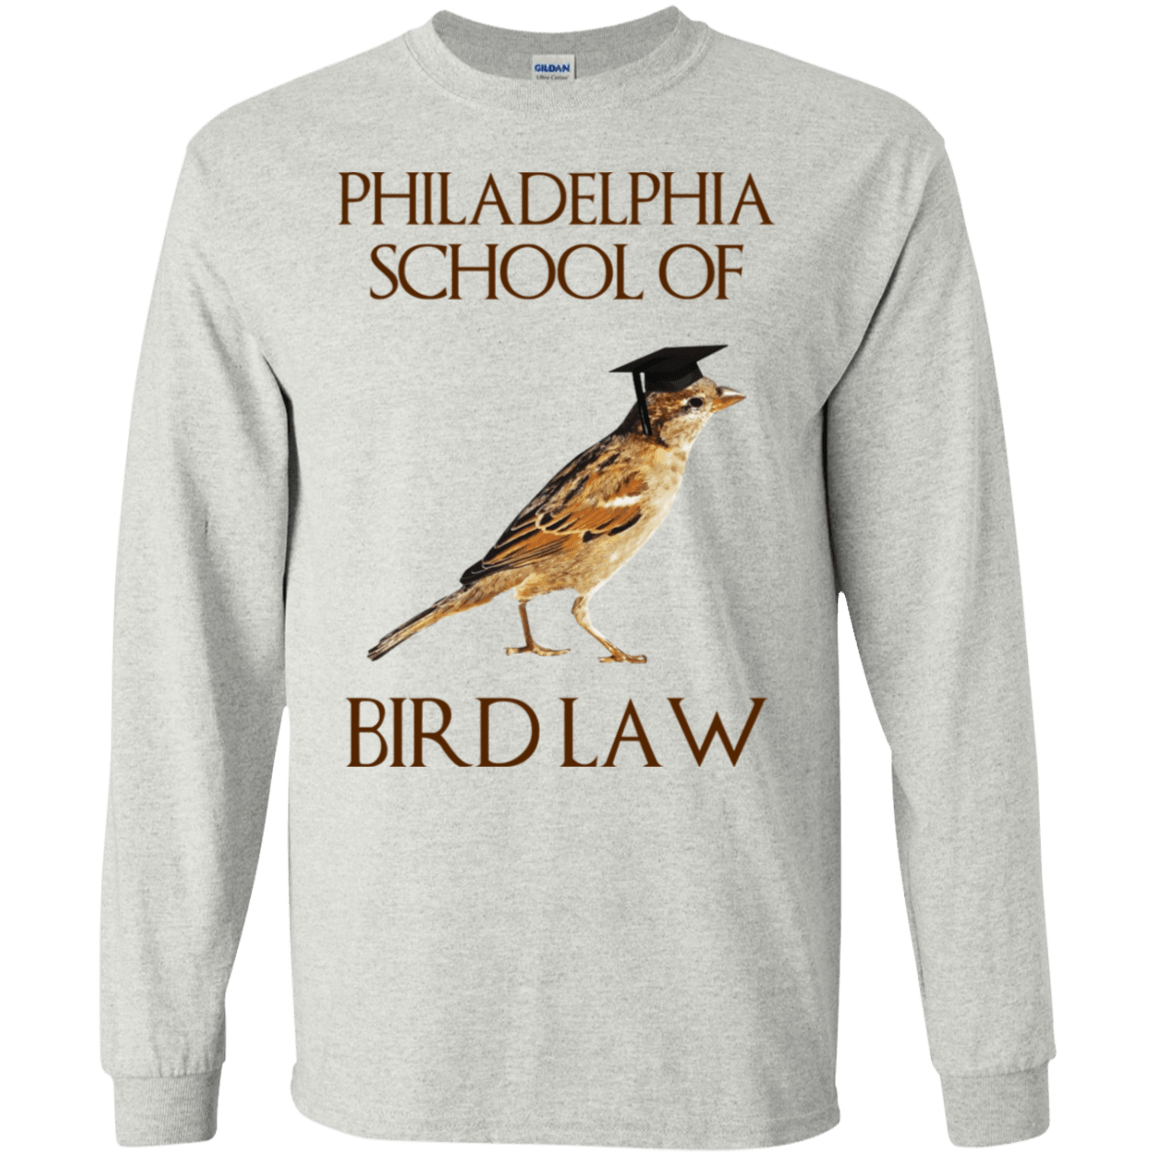 Philadelphia School of Bird Law 30-2112-73057594-10754 - Tee Ript